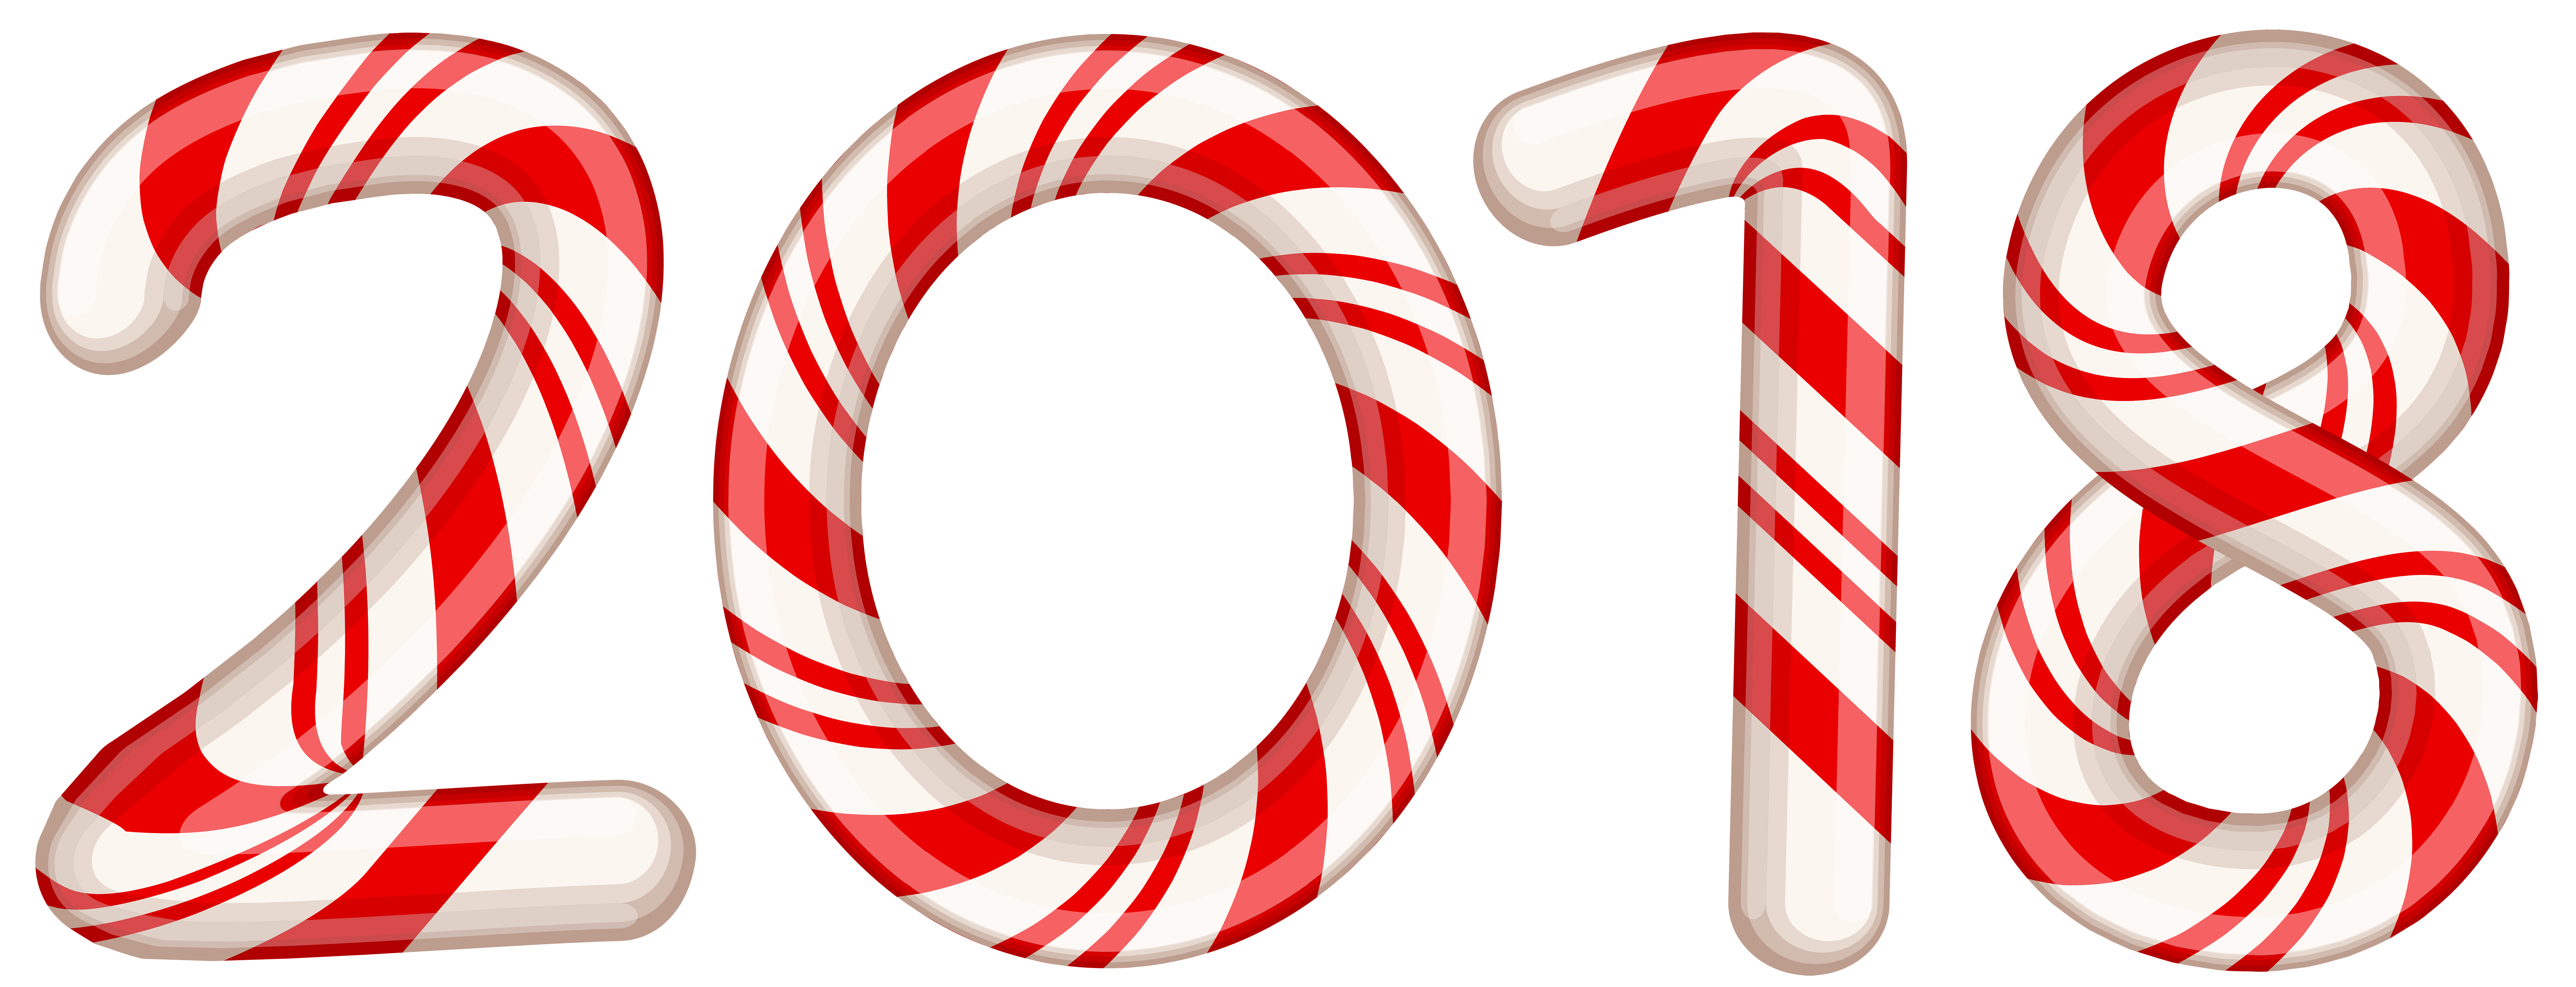 8000x3066 2018 Candy Cane Red Png Clip Art Imageu200b Gallery Yopriceville